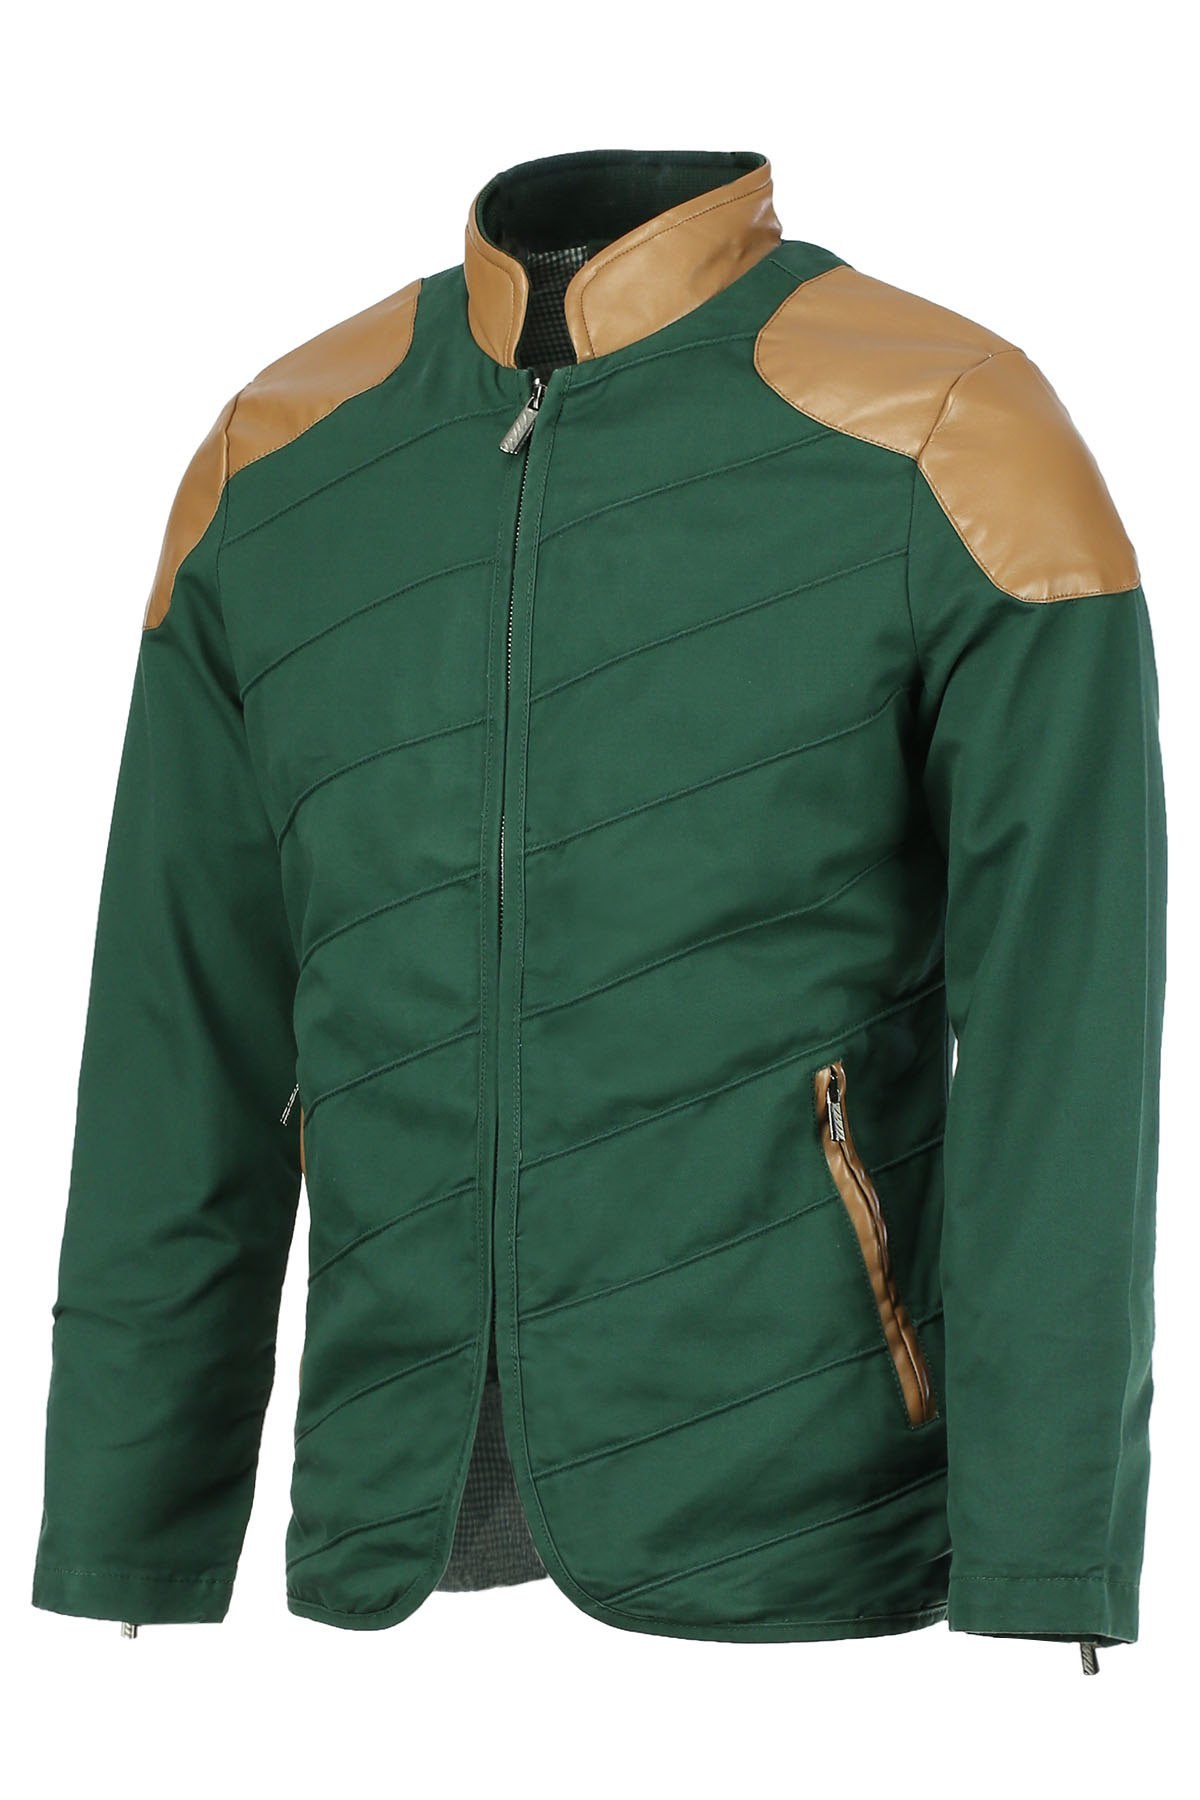 Modish Stand Collar Multi-Zipper PU Leather Spliced Color Block Men's Long Sleeves Jacket - BLACKISH GREEN L